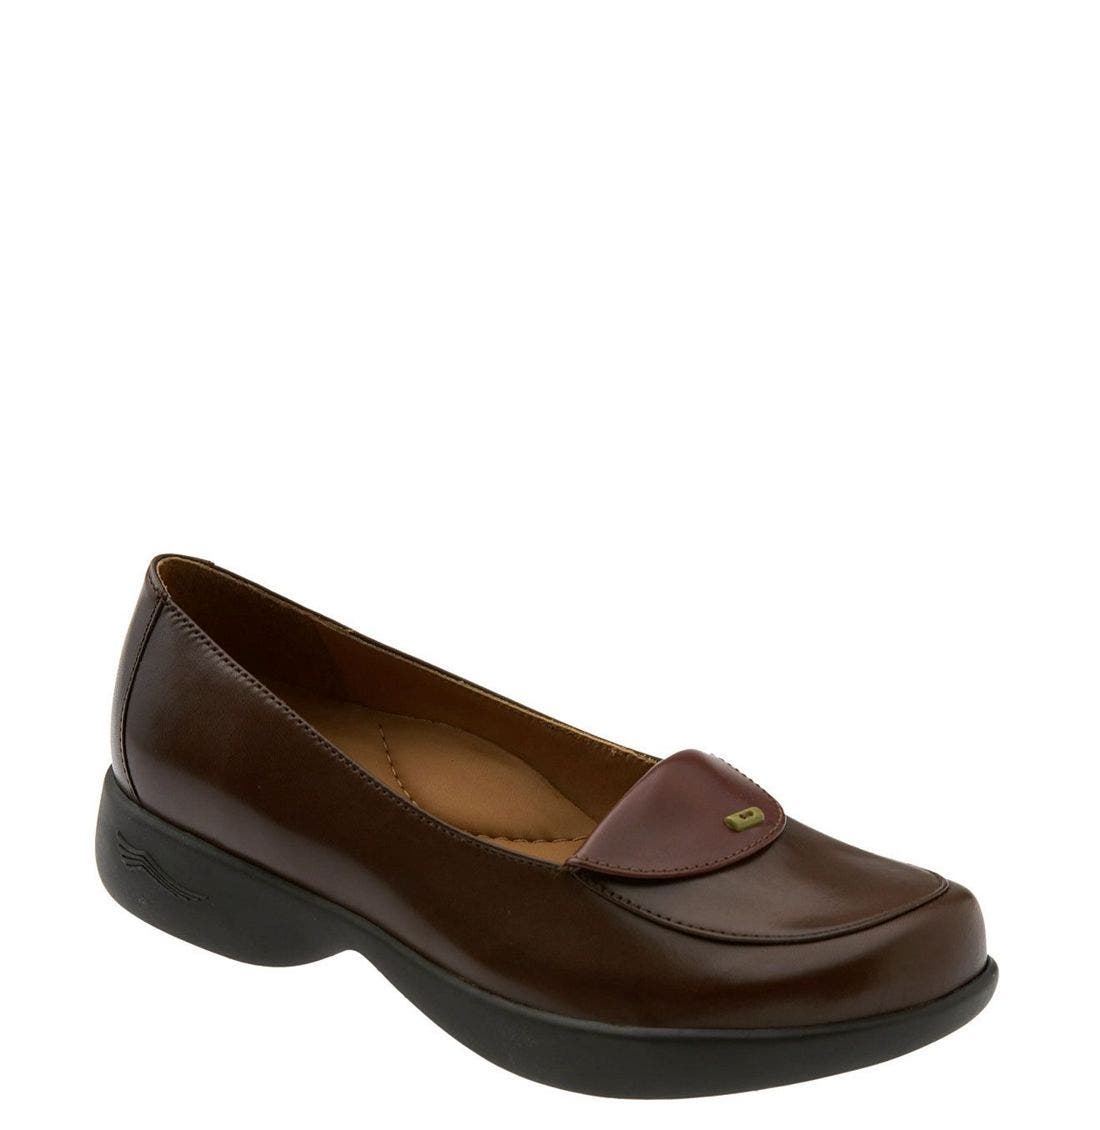 Alternate Image 1 Selected - Dansko 'Desiree' Loafer